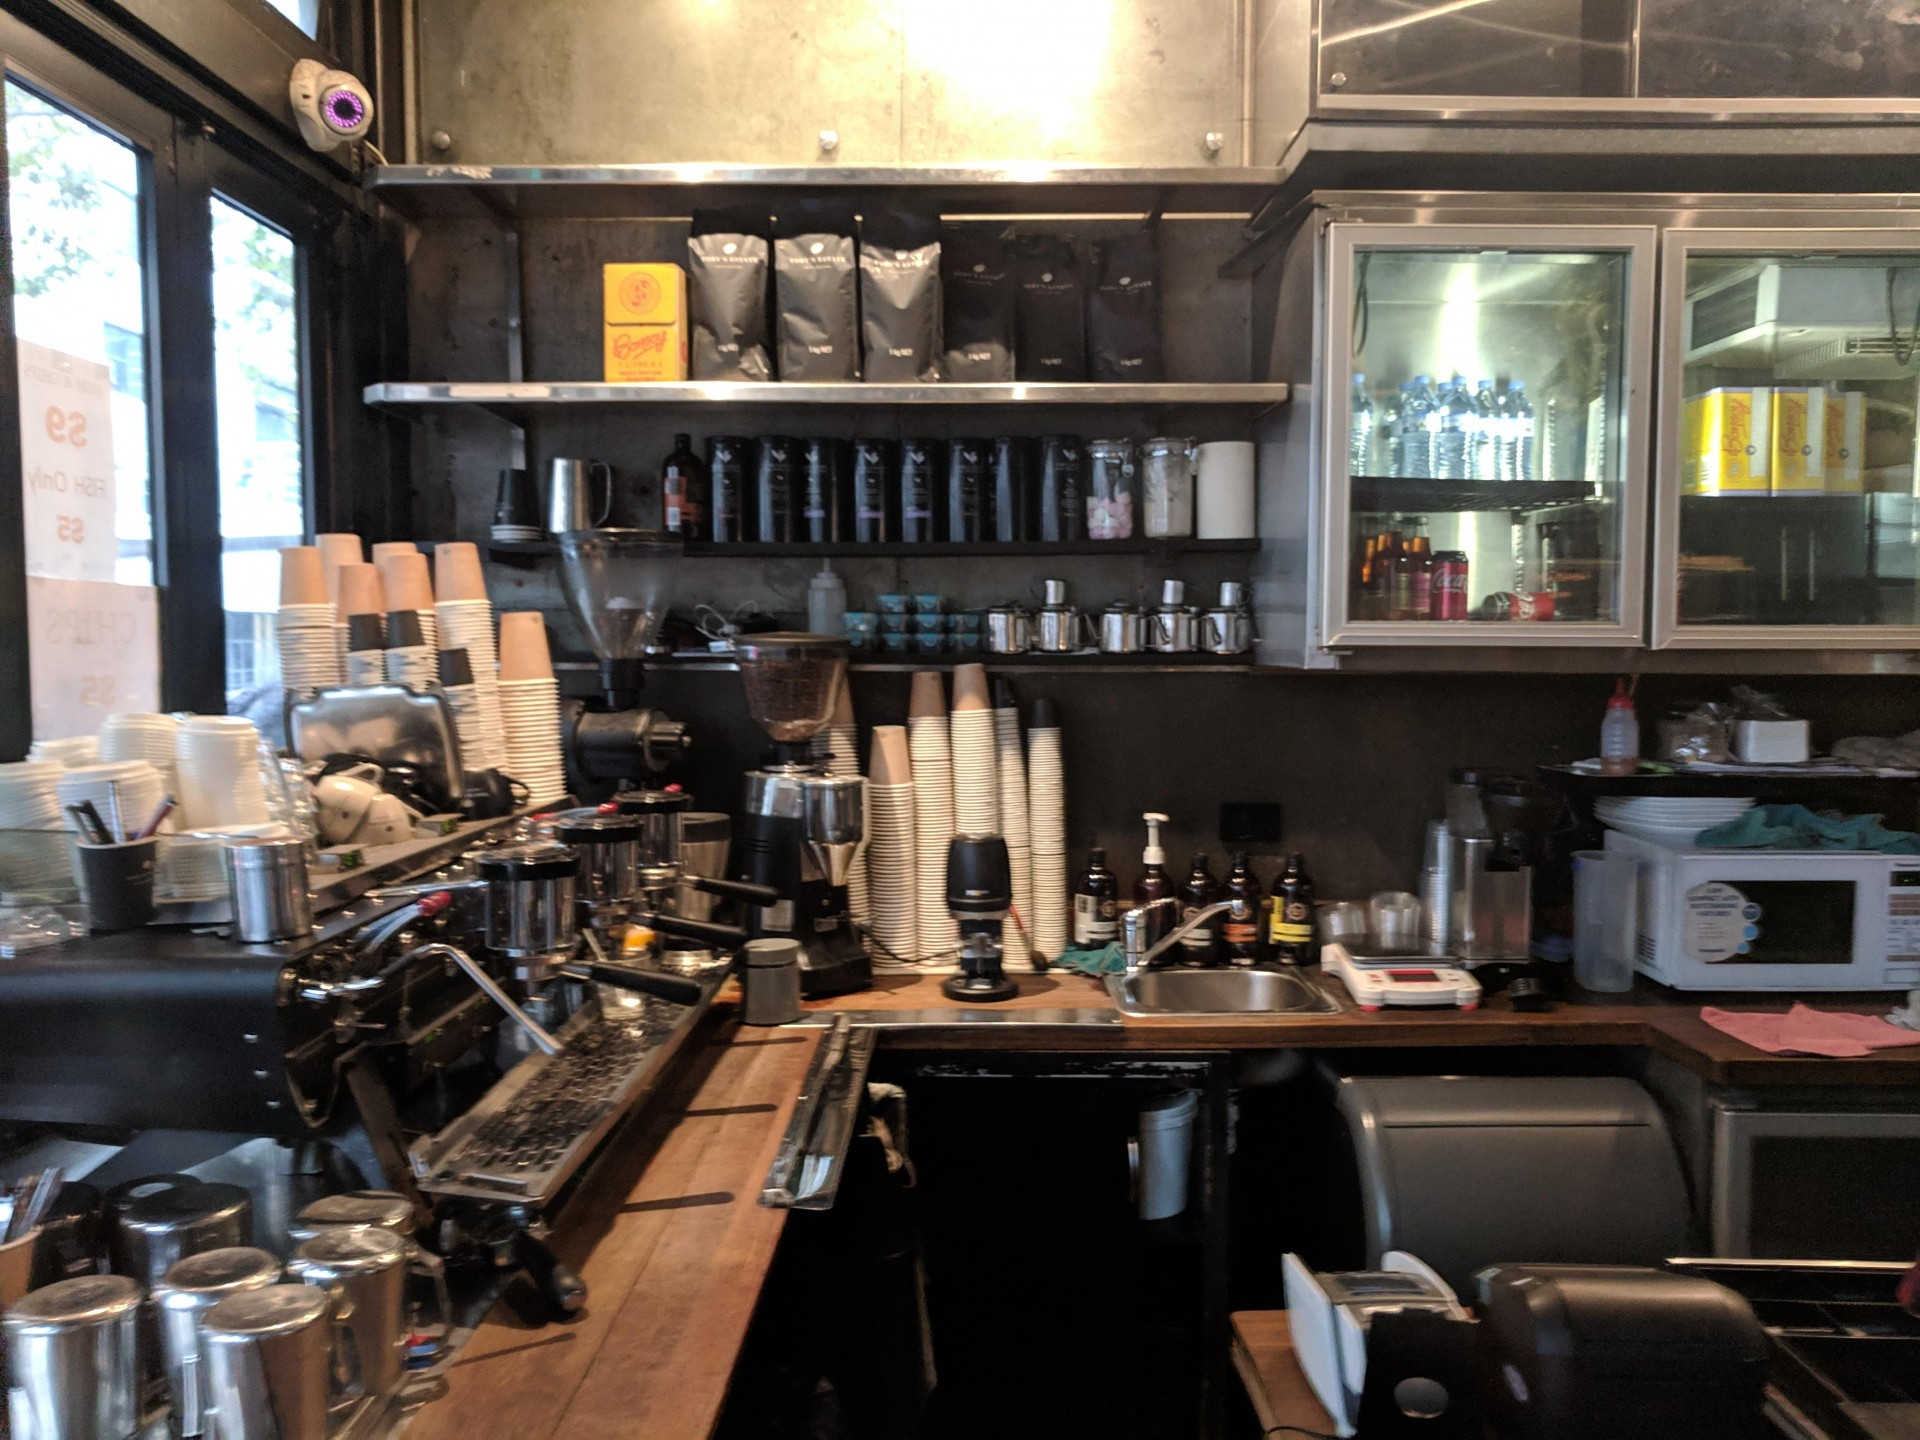 Prime Location 5-Day Cafe near University and Tafe Selling Over 25kg Coffee a Week. $2,725/wk Net.